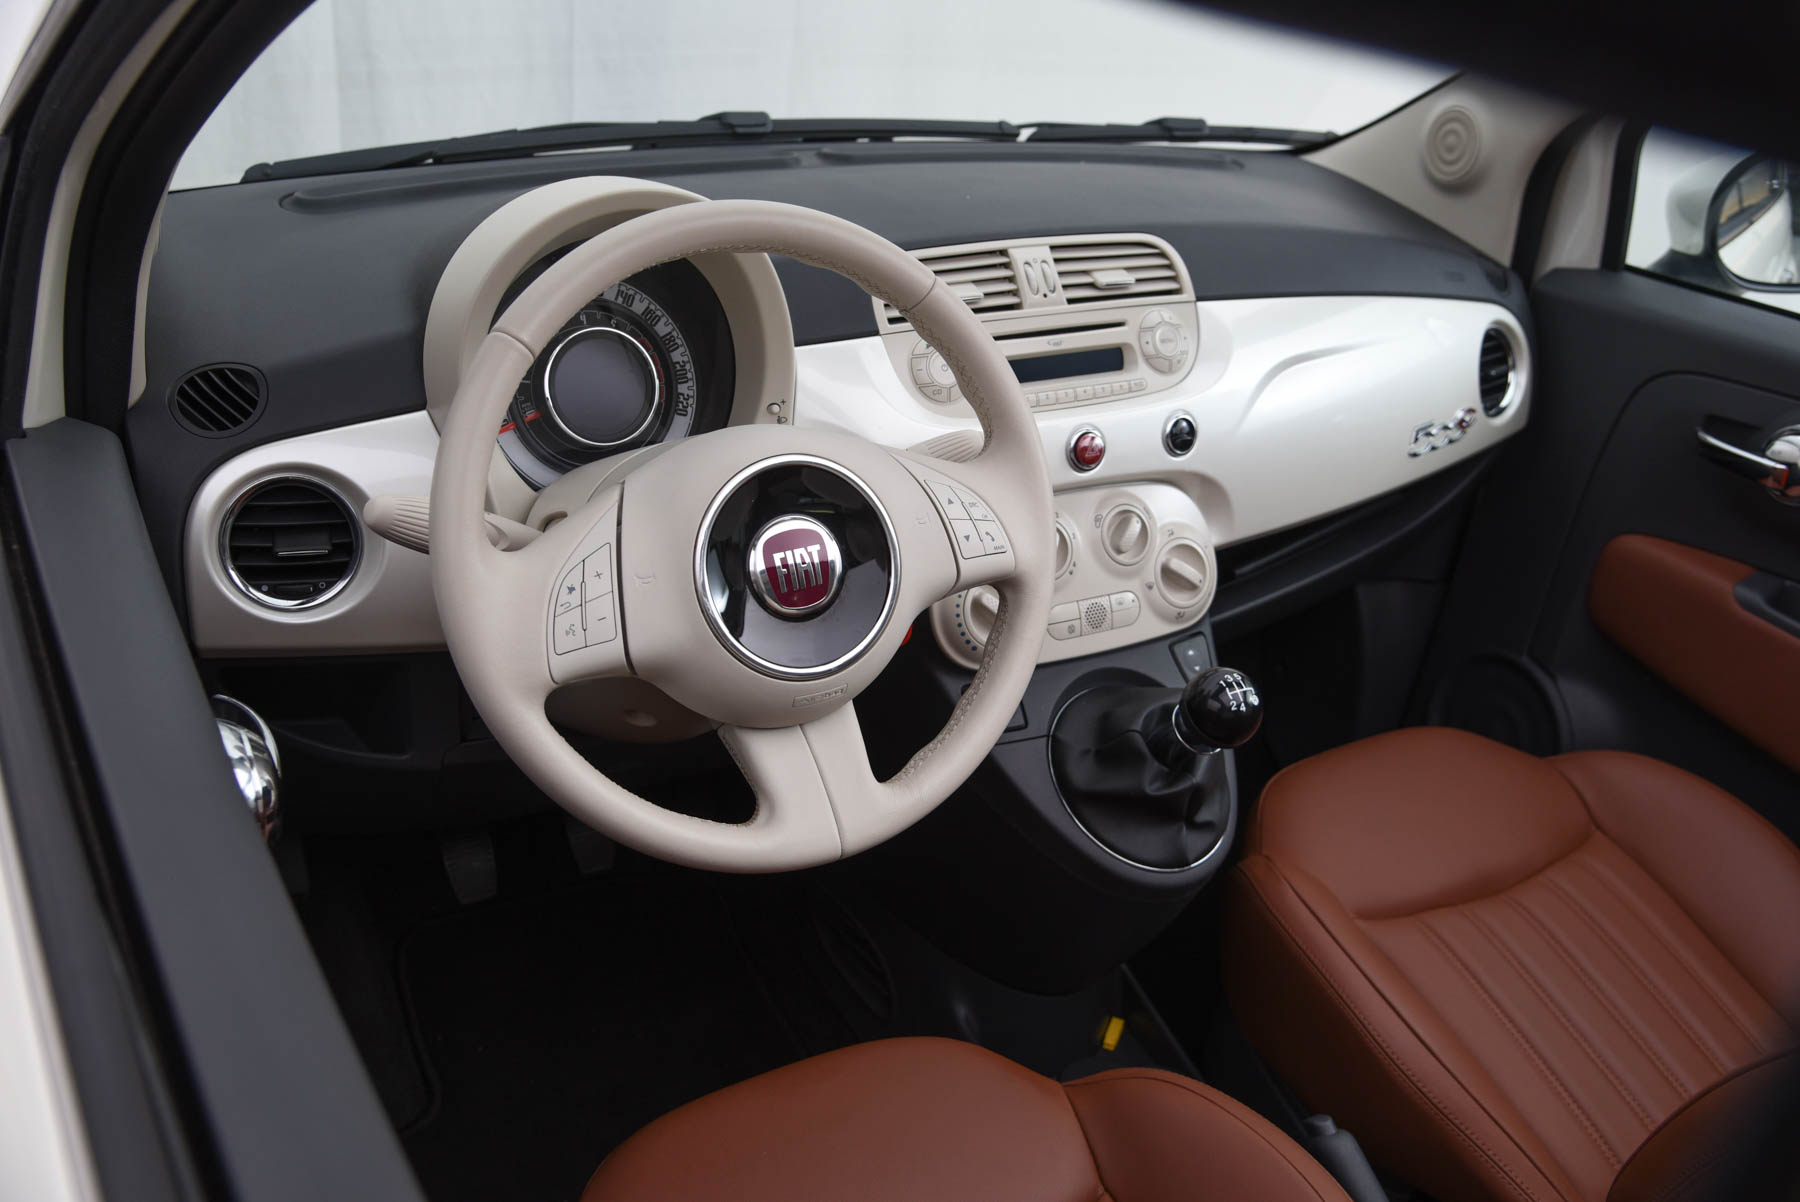 Fiat 500 abarth interieur of interieur fiat 500 for Interieur 500 abarth